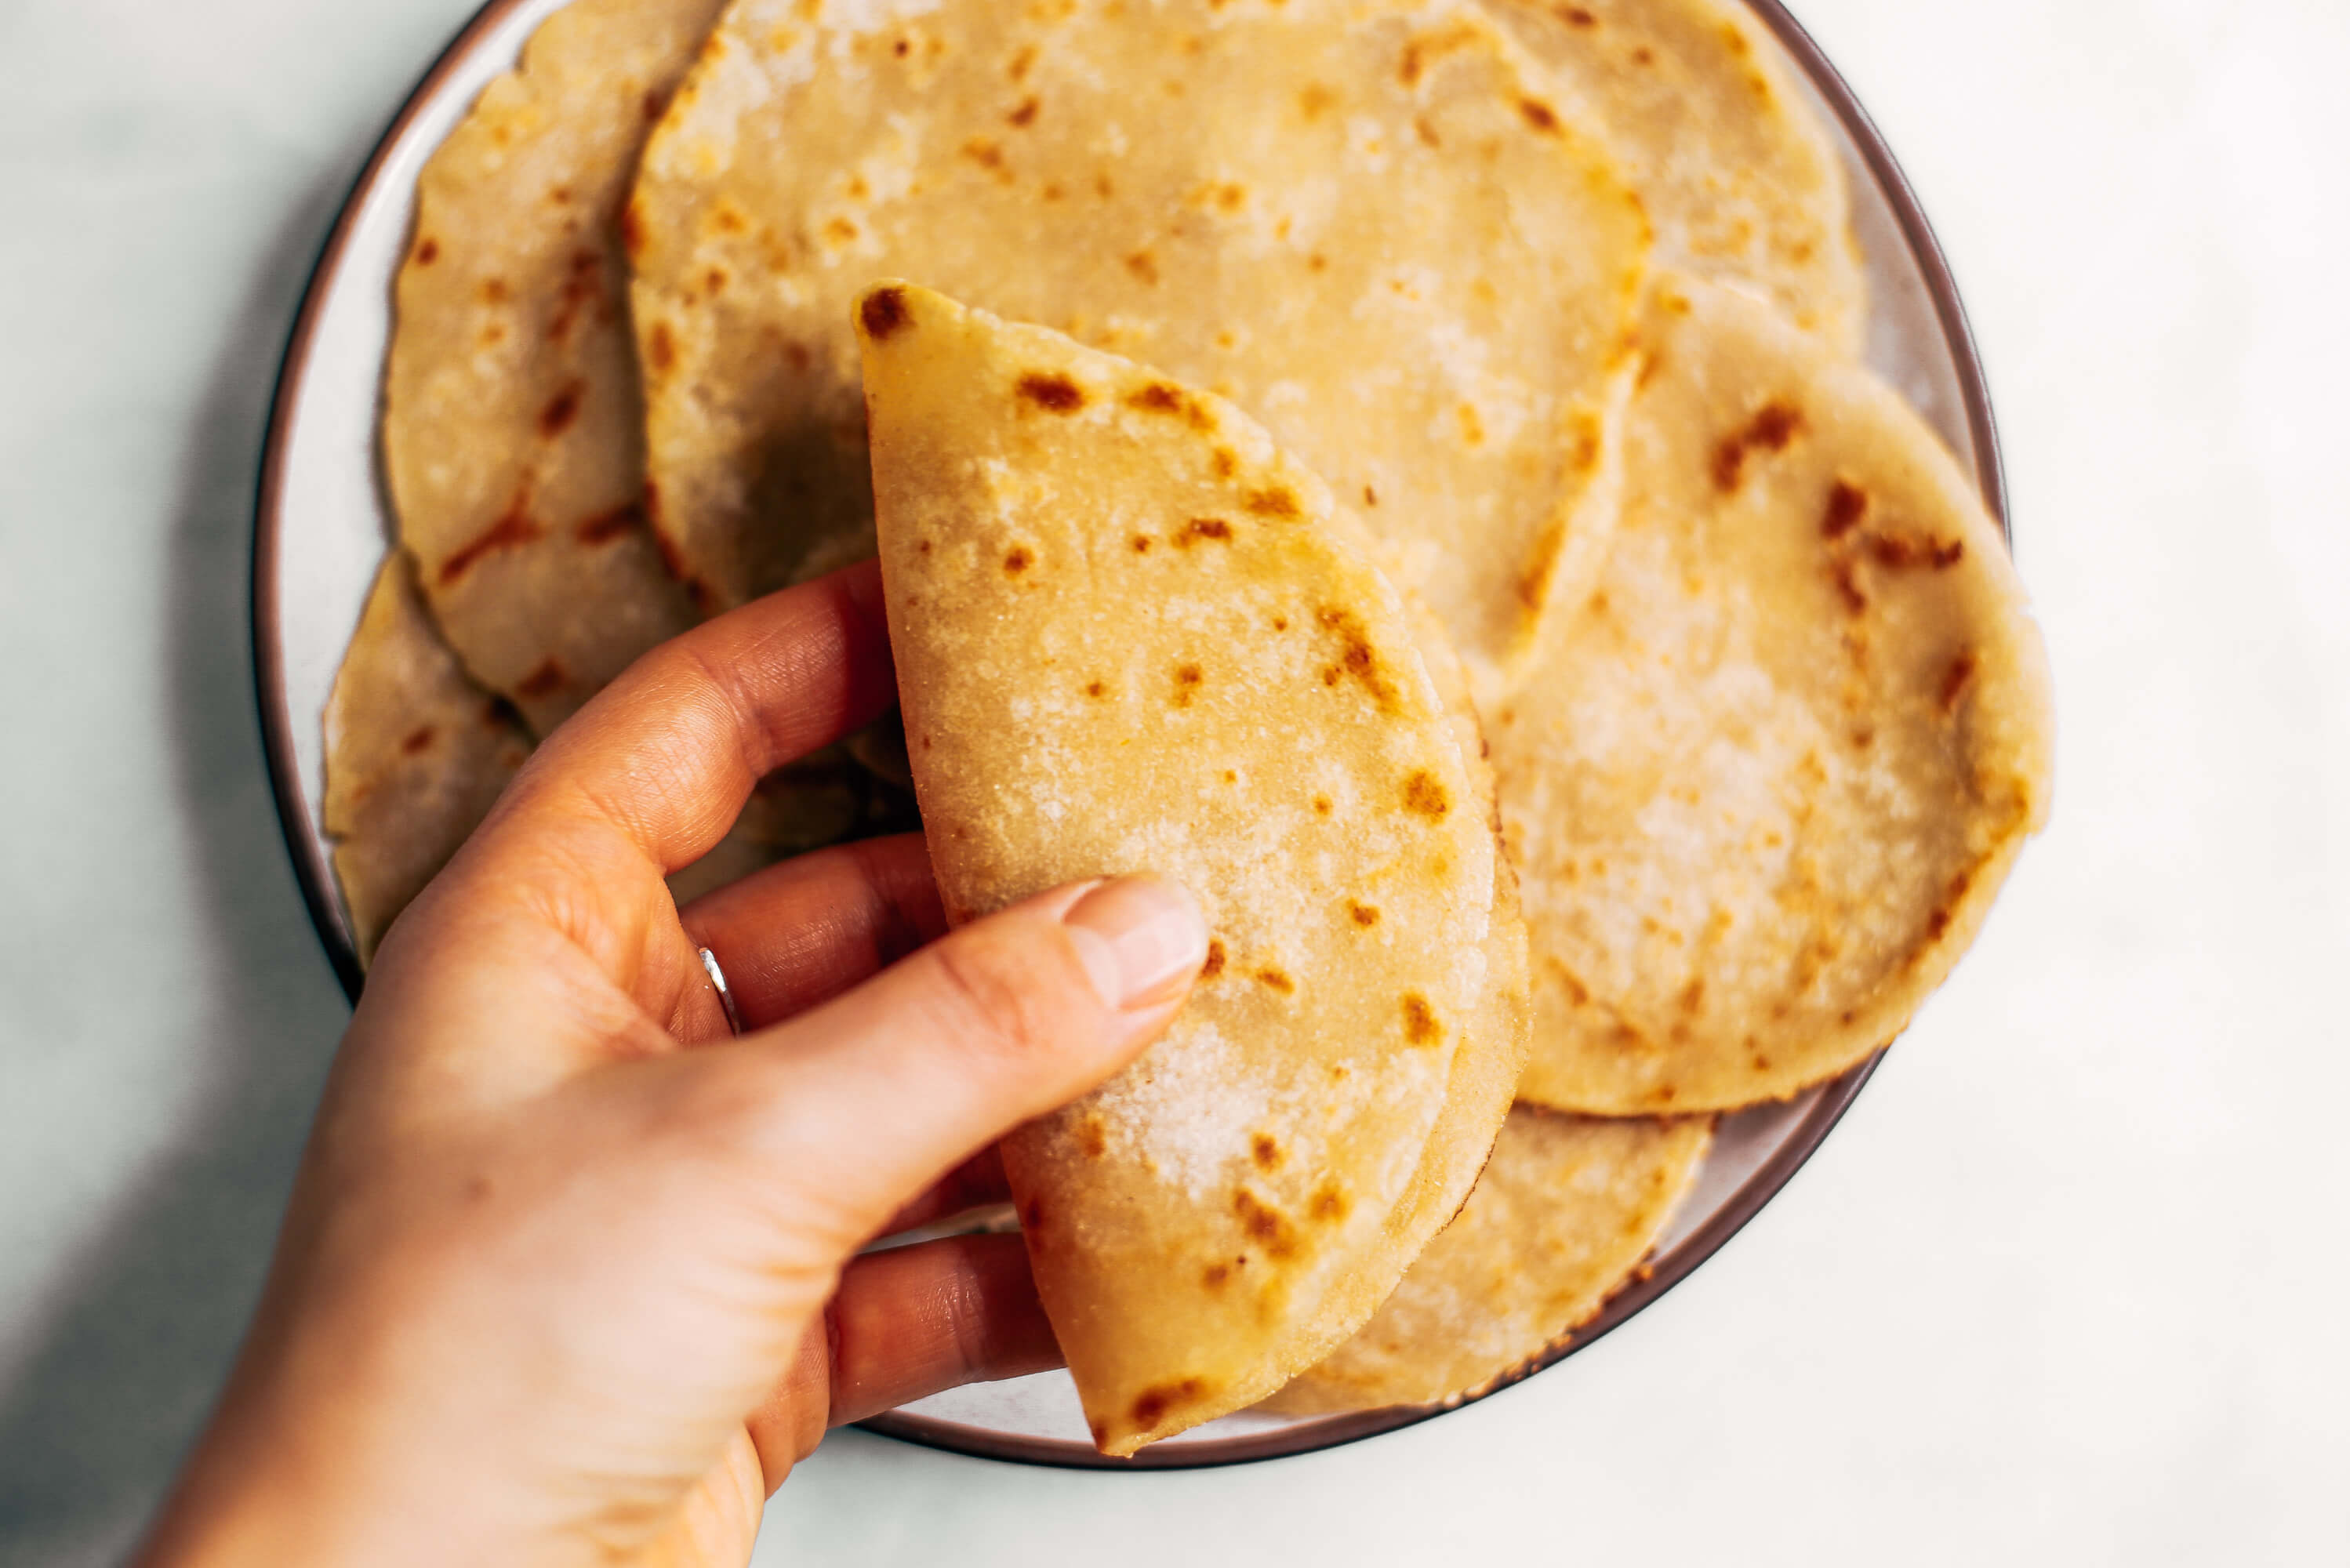 Two ingredient paleo cauliflower tortillas! Life-changing recipe for low calorie gluten free tortillas, ready in minutes! These tortillas have 42 calories and are loaded with veggies to keep you healthy and satisfied. Delicious, easy, and mind-blowing-easy recipe for homemade tortillas. #paleo #recipes #cooking #healthy